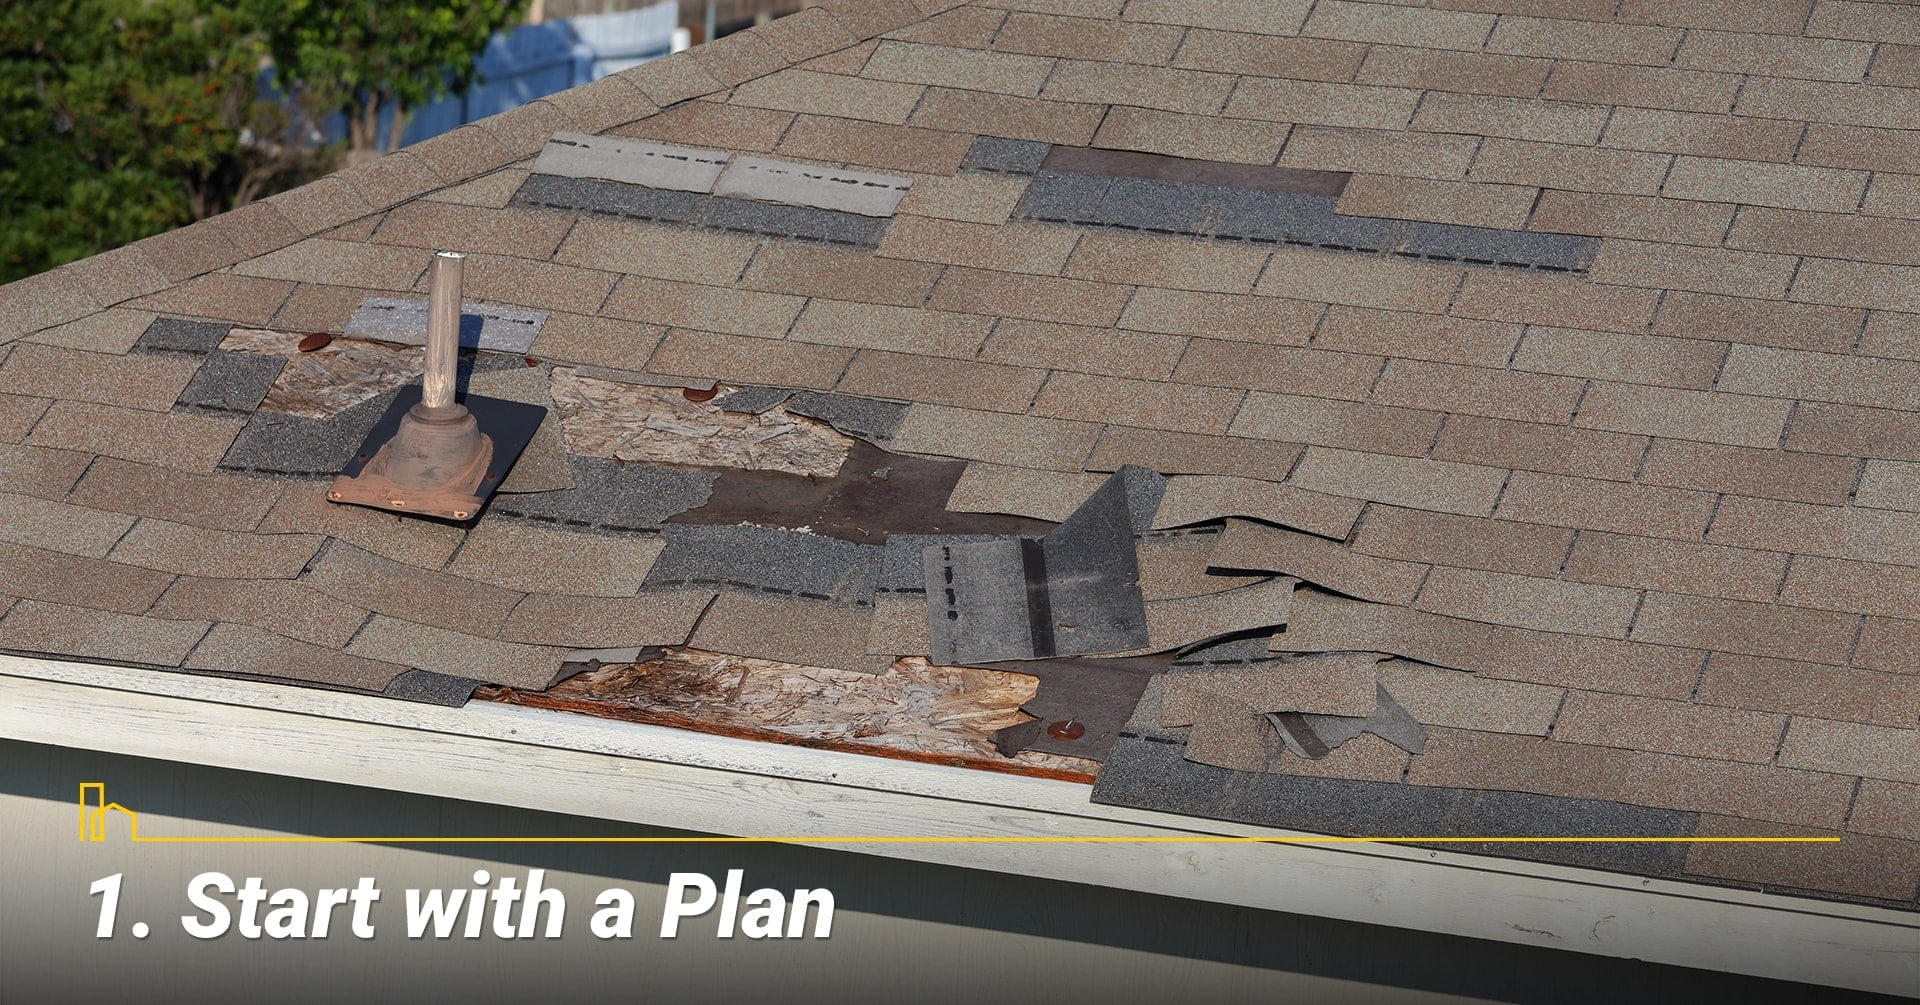 Start with a Plan, plan for a roof replacement